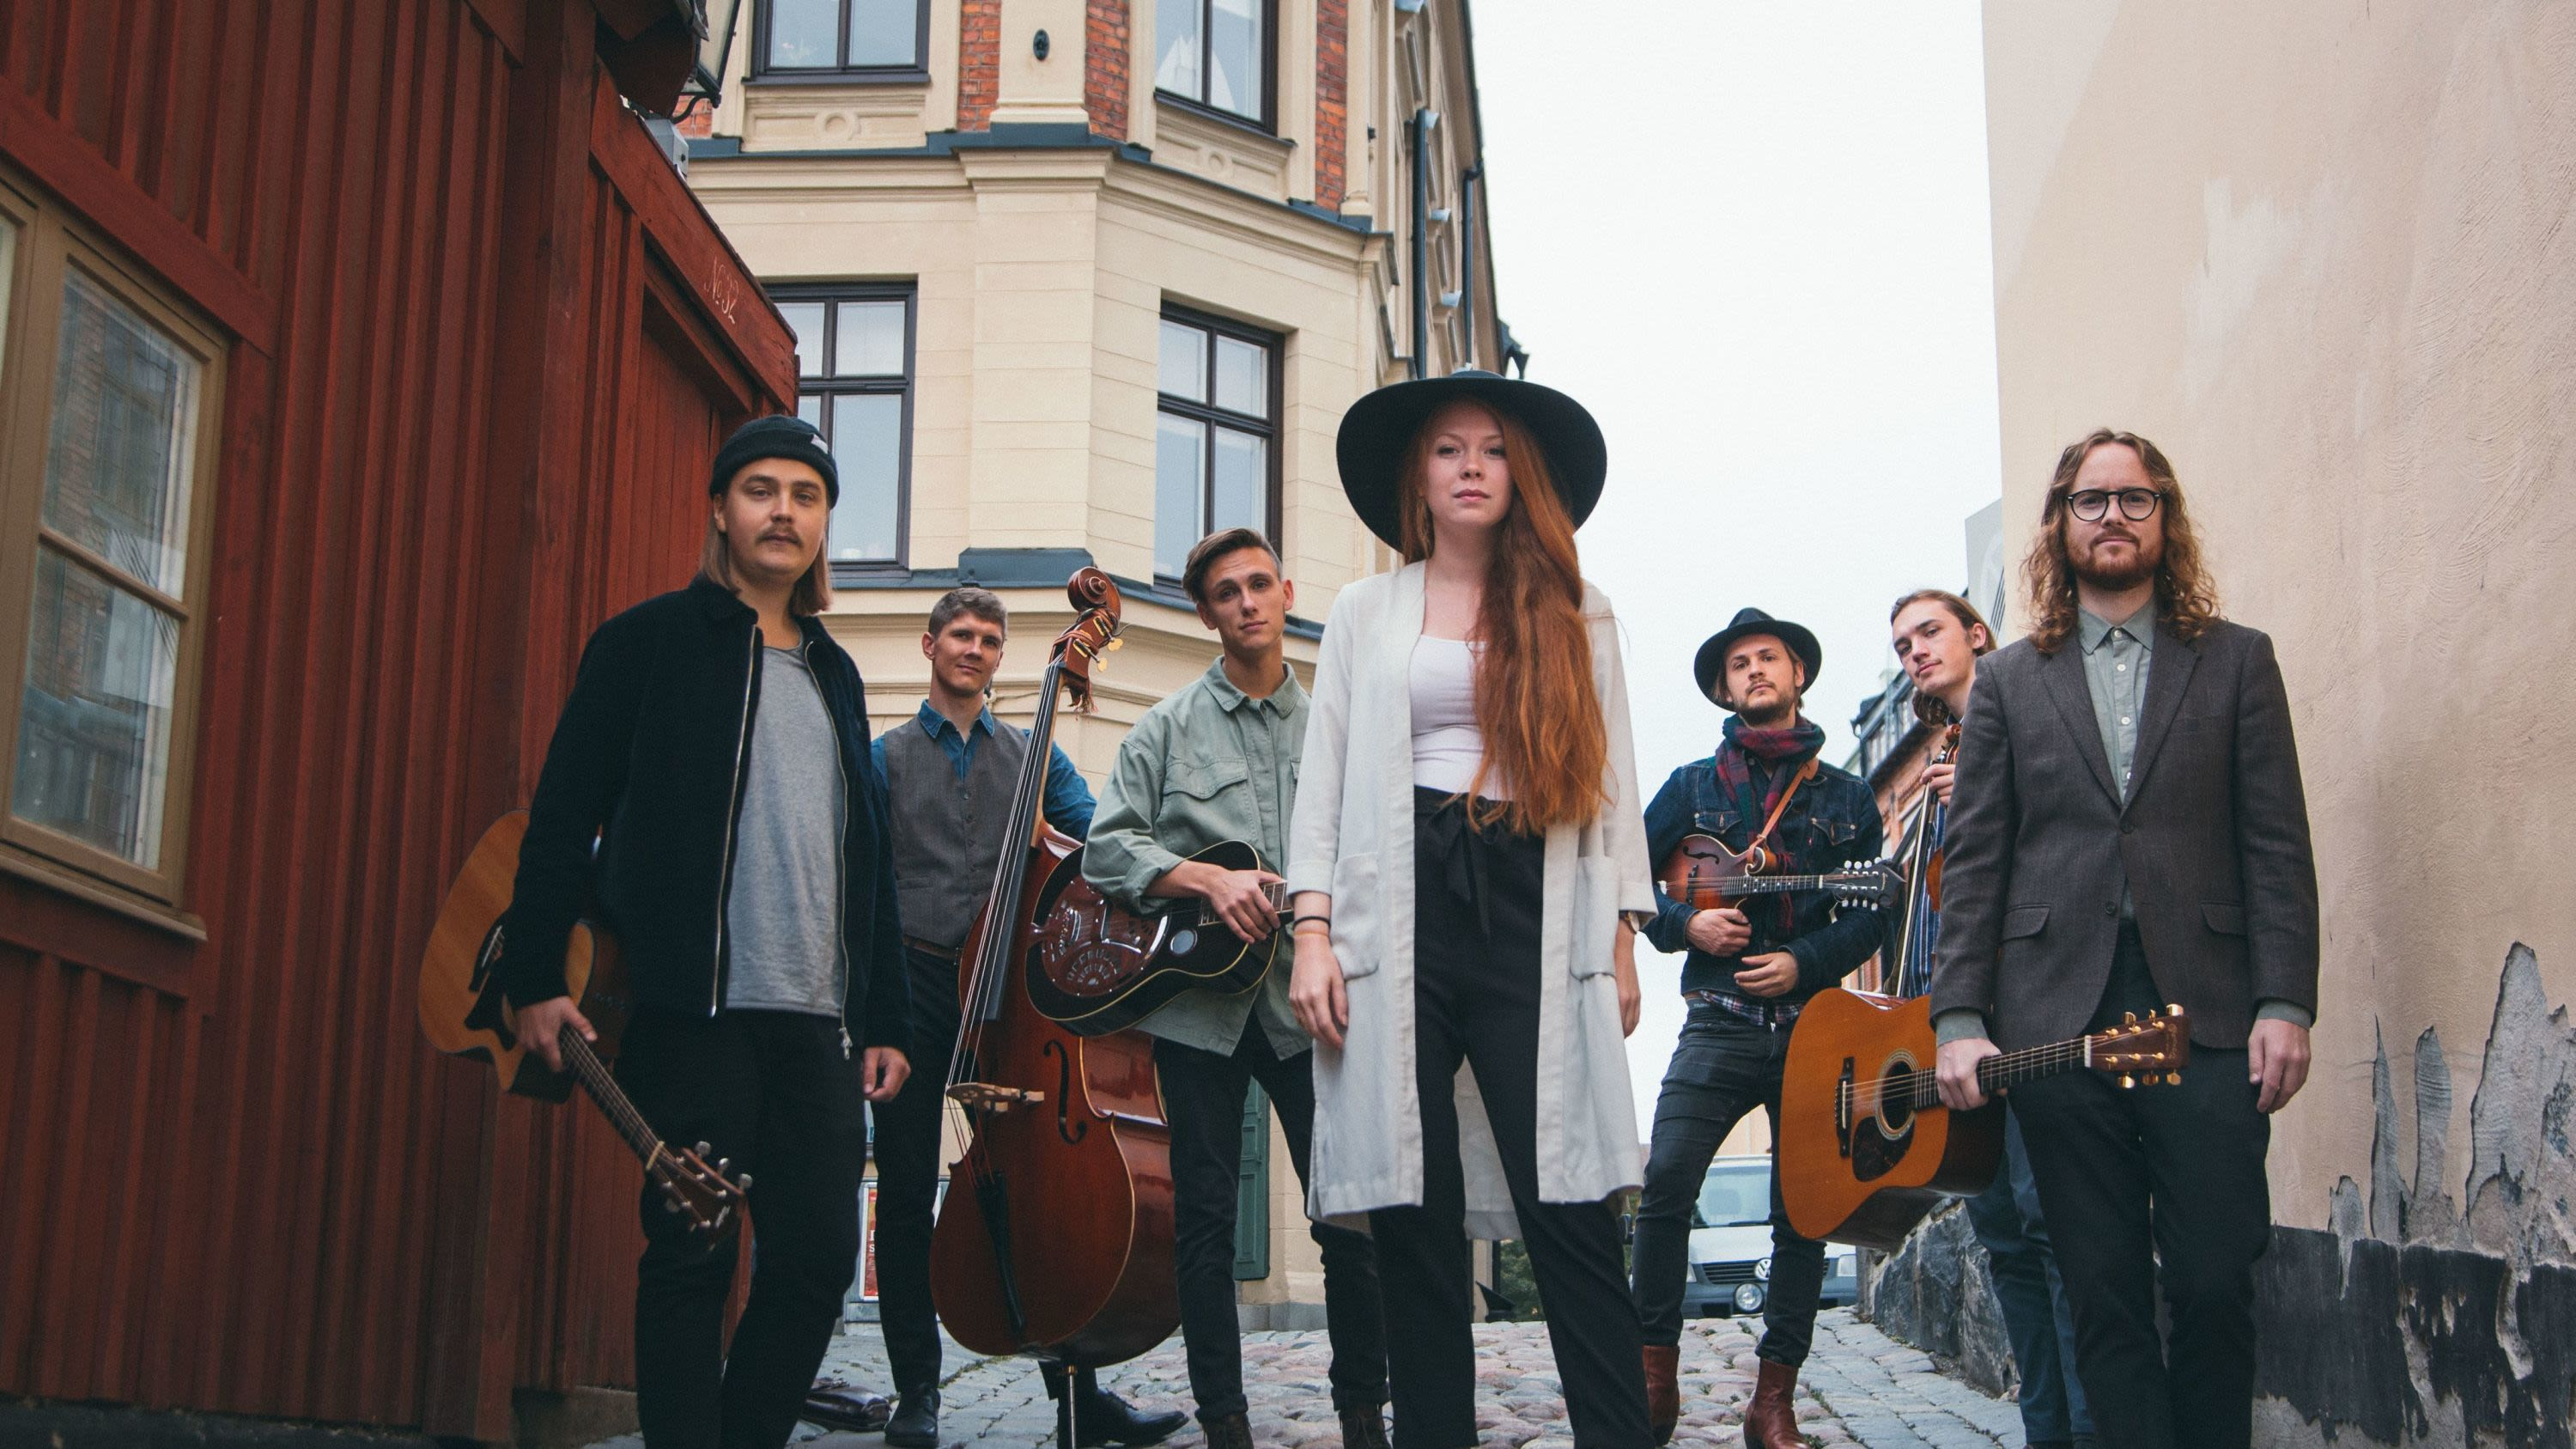 Sofia & The Steel String Pickers